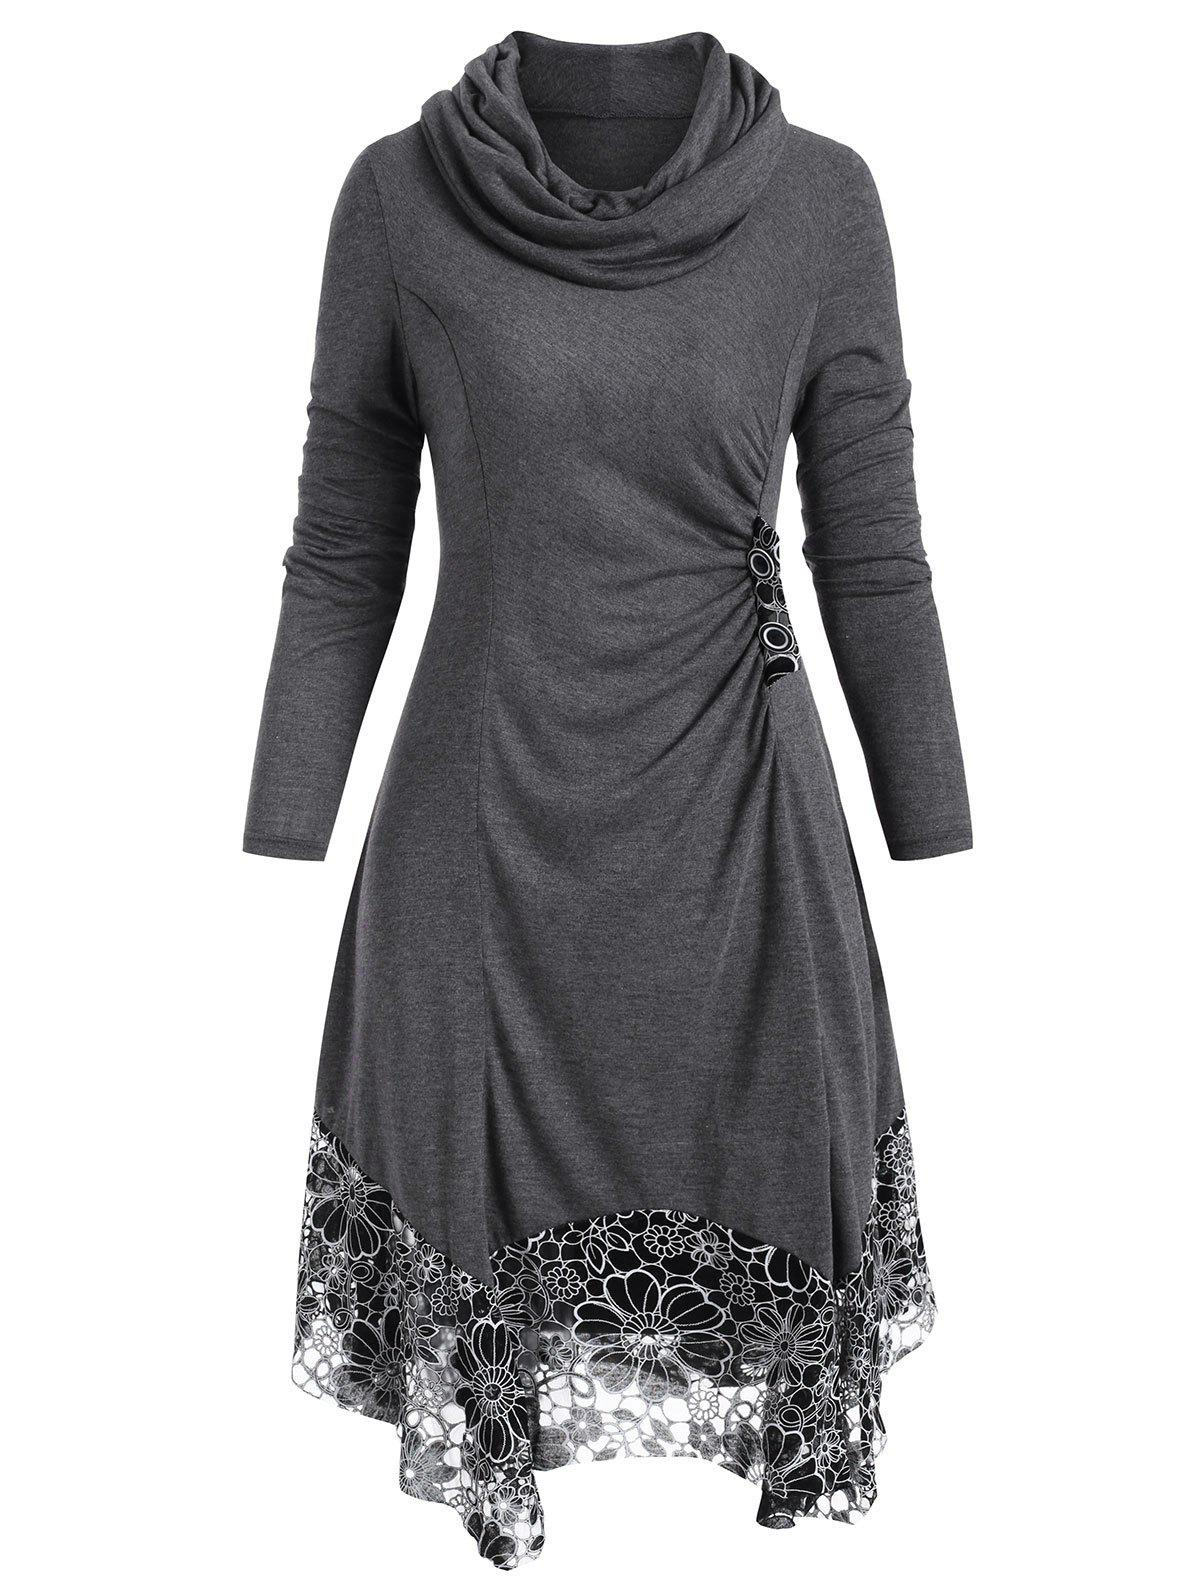 Cowl Neck Floral Asymmetrical Dress - GRAY XL